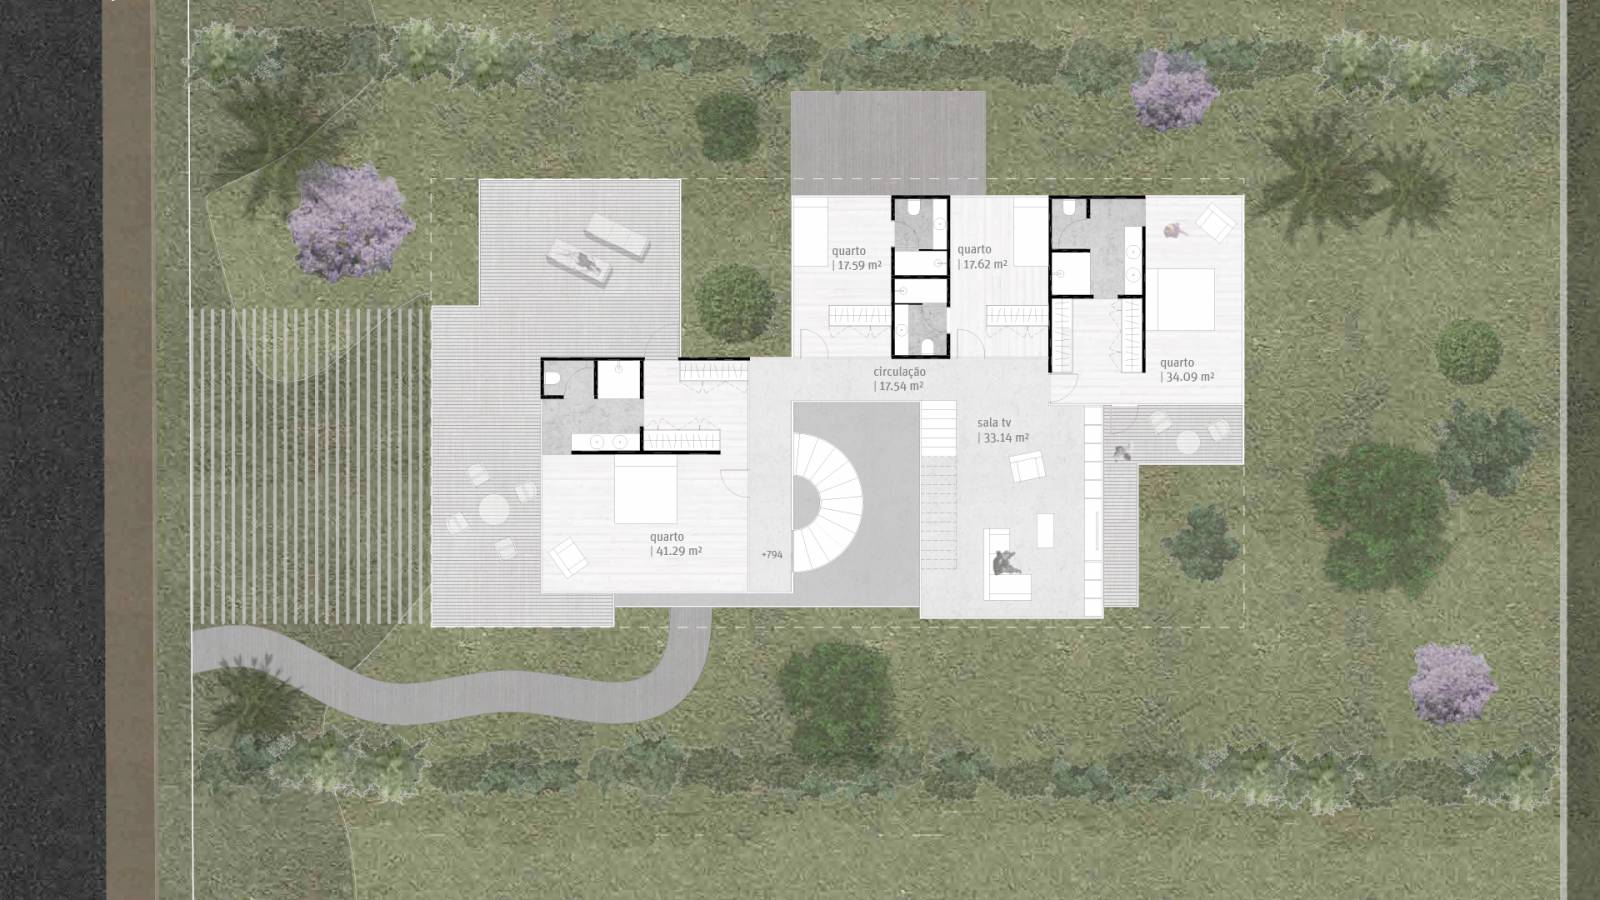 HOUSE #5 - LEVEL 2 PLAN - 6 case study houses - SPOL Architects